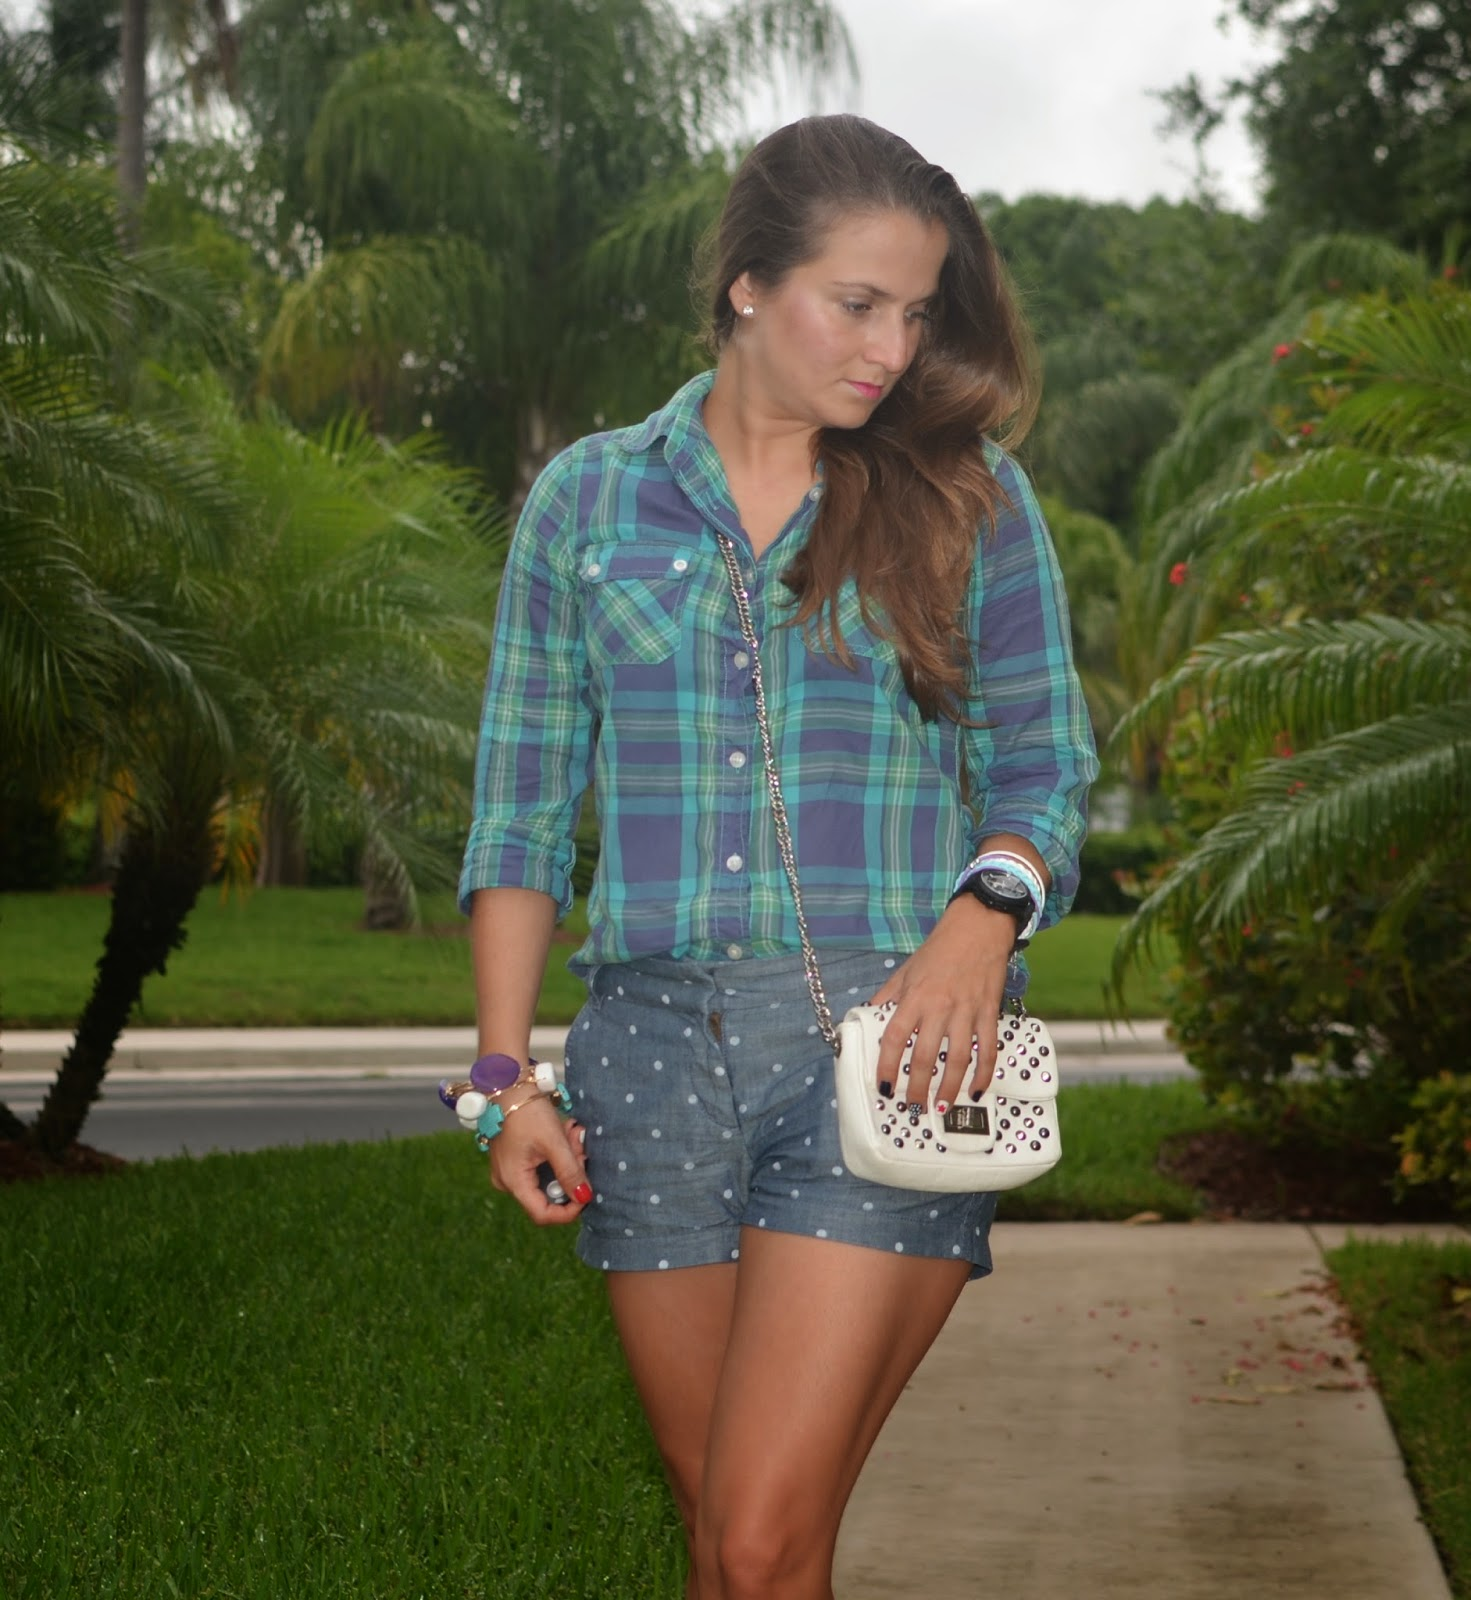 Plaid top - polka dot shorts - printed flats - studded clutch